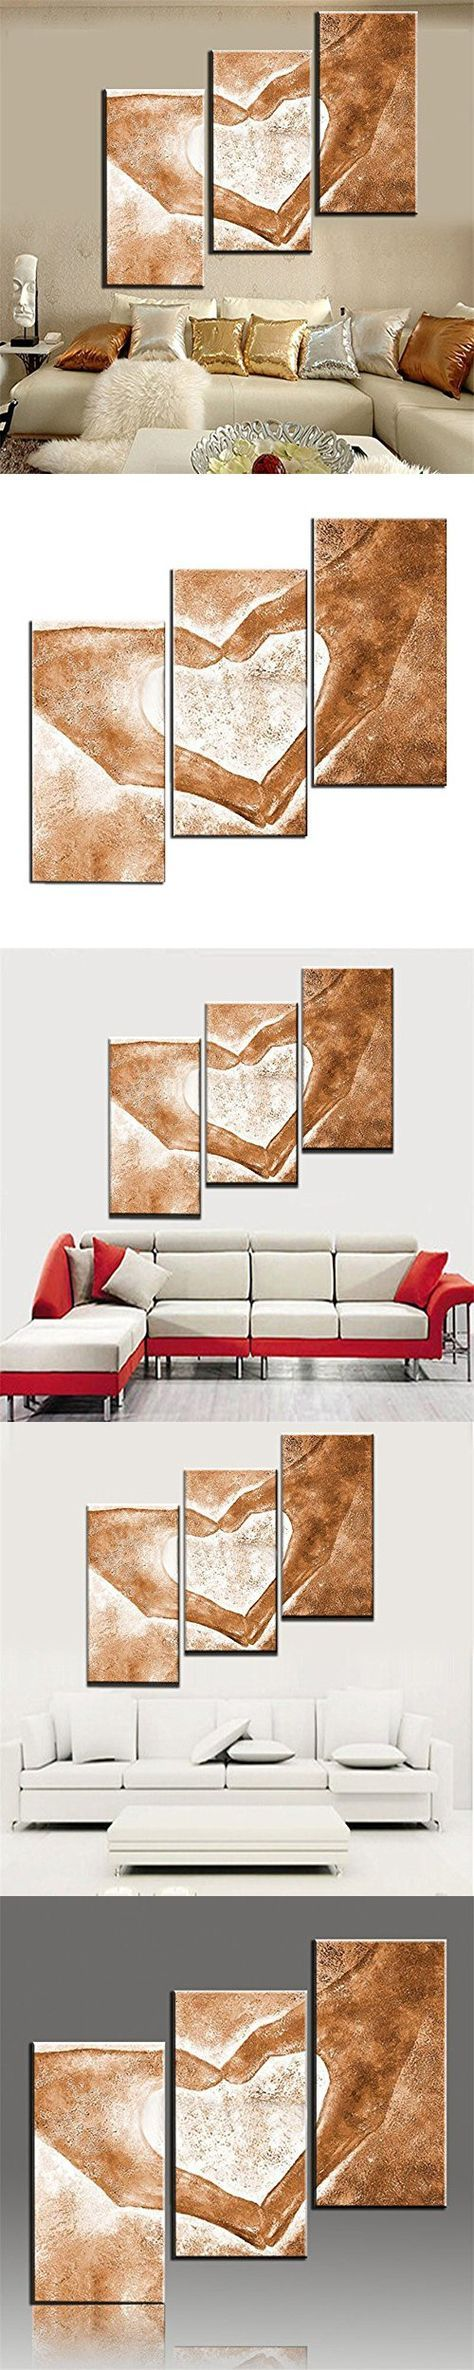 Modern Abstract Oil Painting on Canvas 3 Piece, Handpainted Love Paintings Wall Art for Living Room Home Decor Framed Stretched Ready to Hang, Yellow (24Wx36L inch)